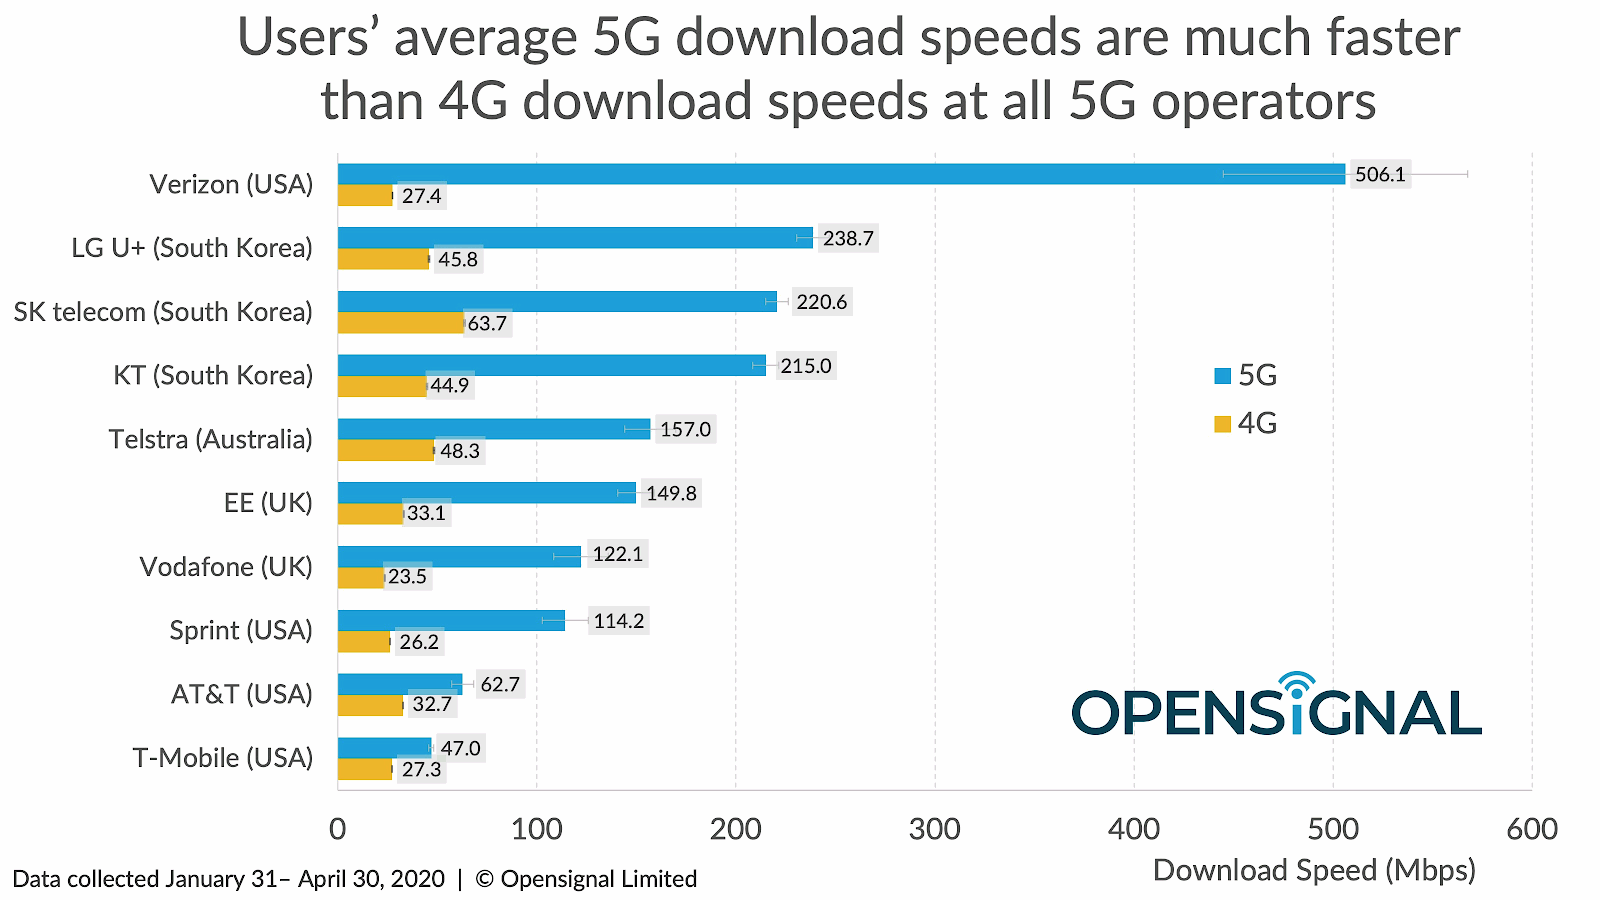 opensignal_avg_5g_vs_4g_speeds_by_operator_april_2020